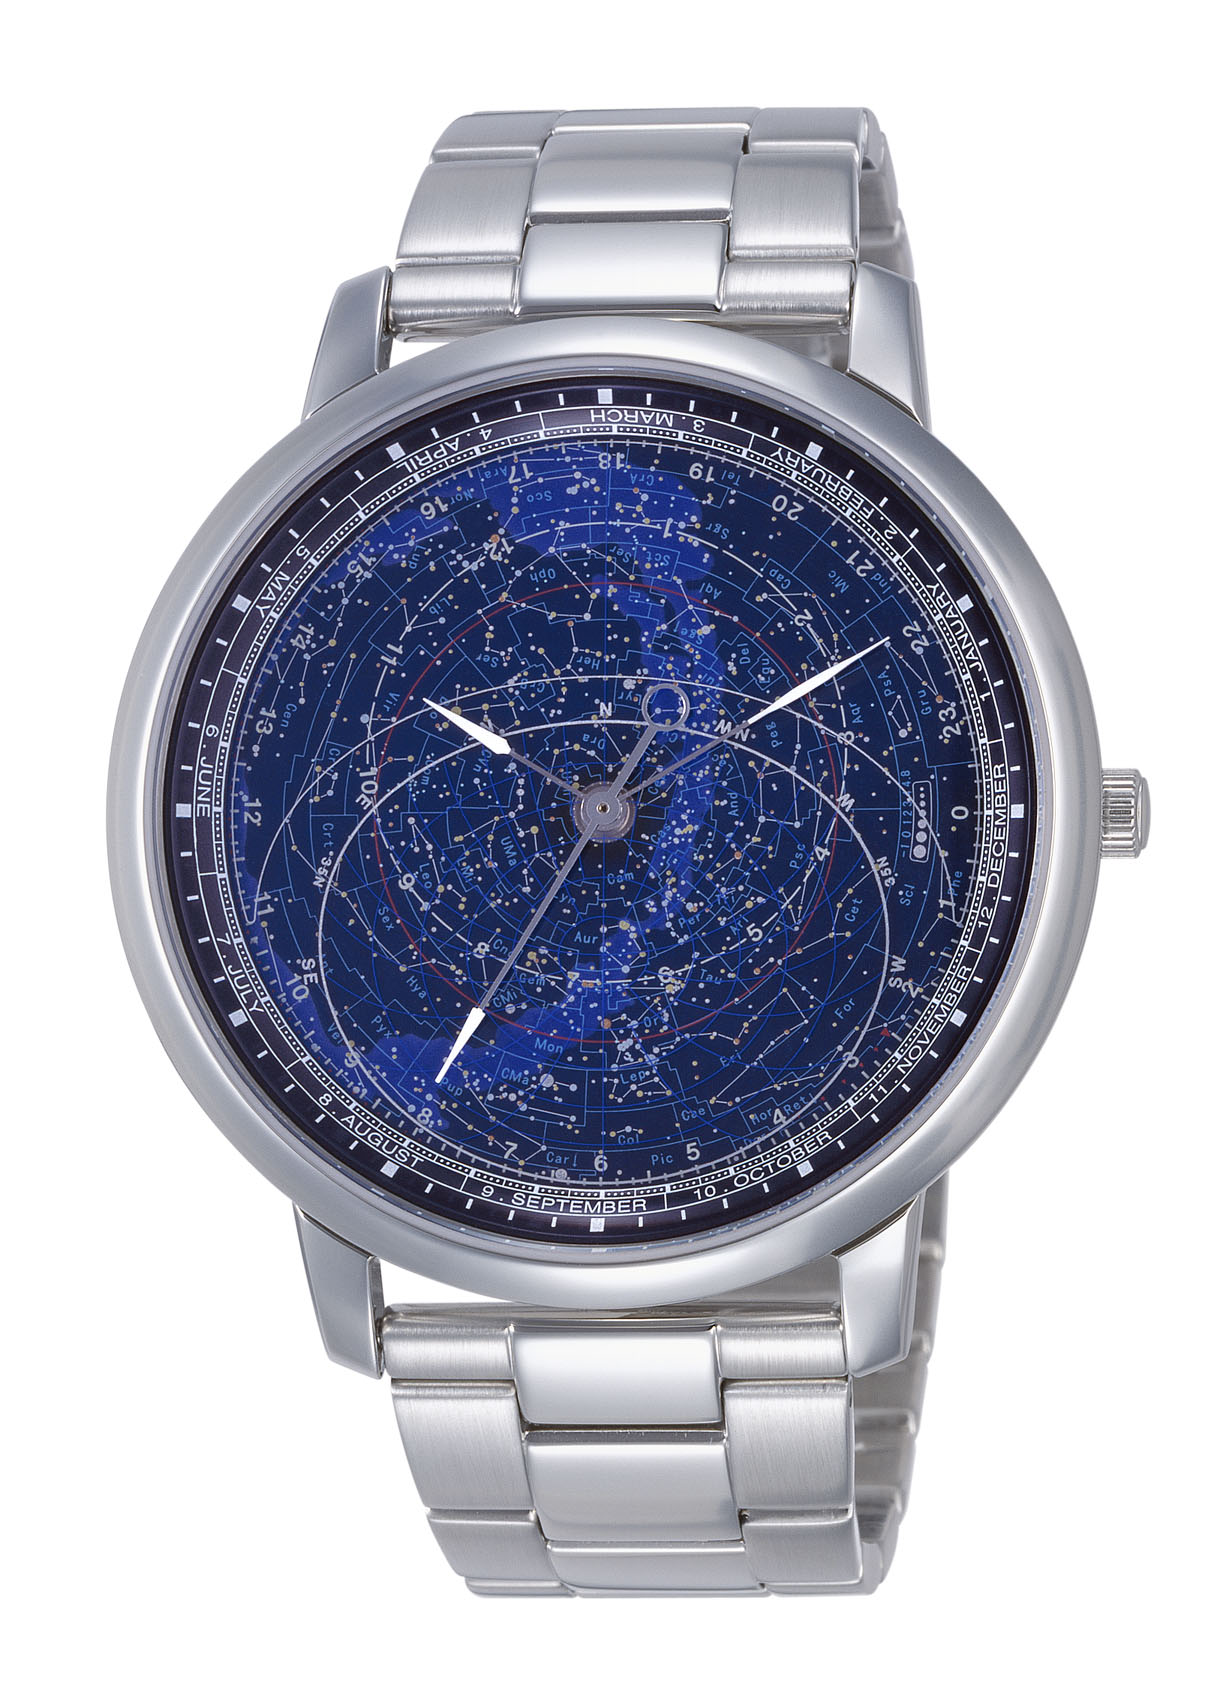 wrist watch with starry sky